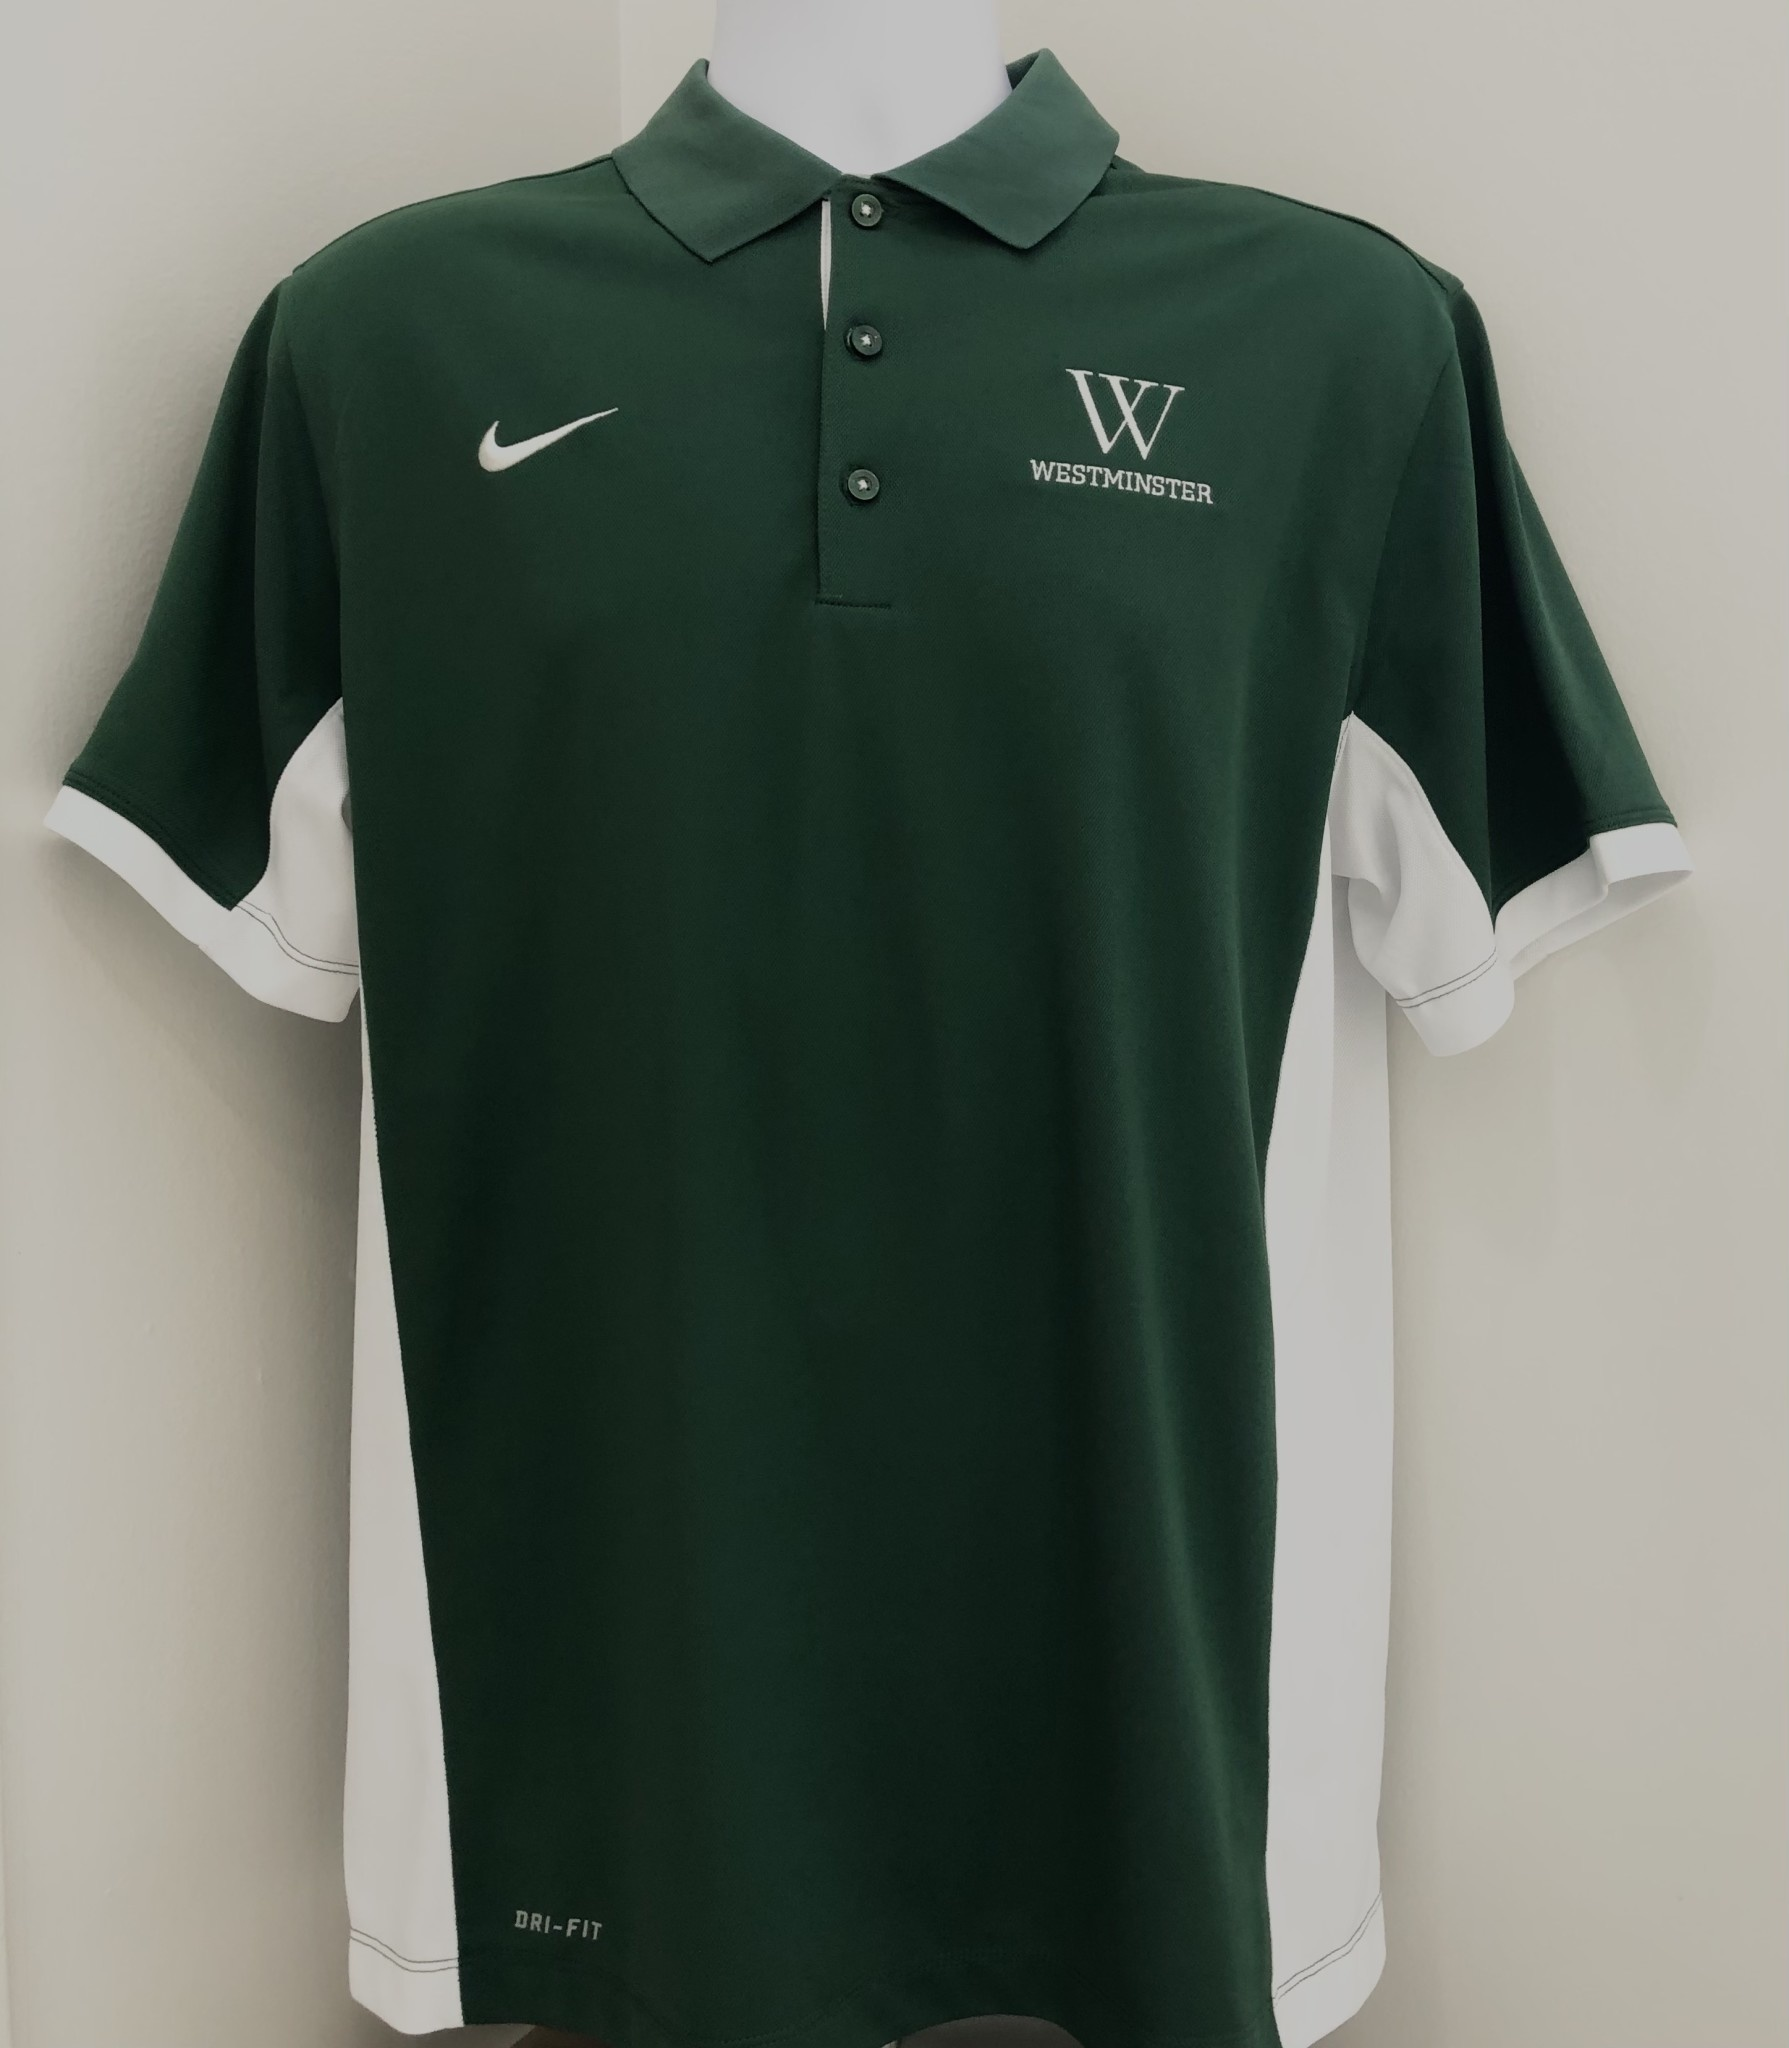 Nike Polo: Nike Team Issue Green with White on Side W over Westminster